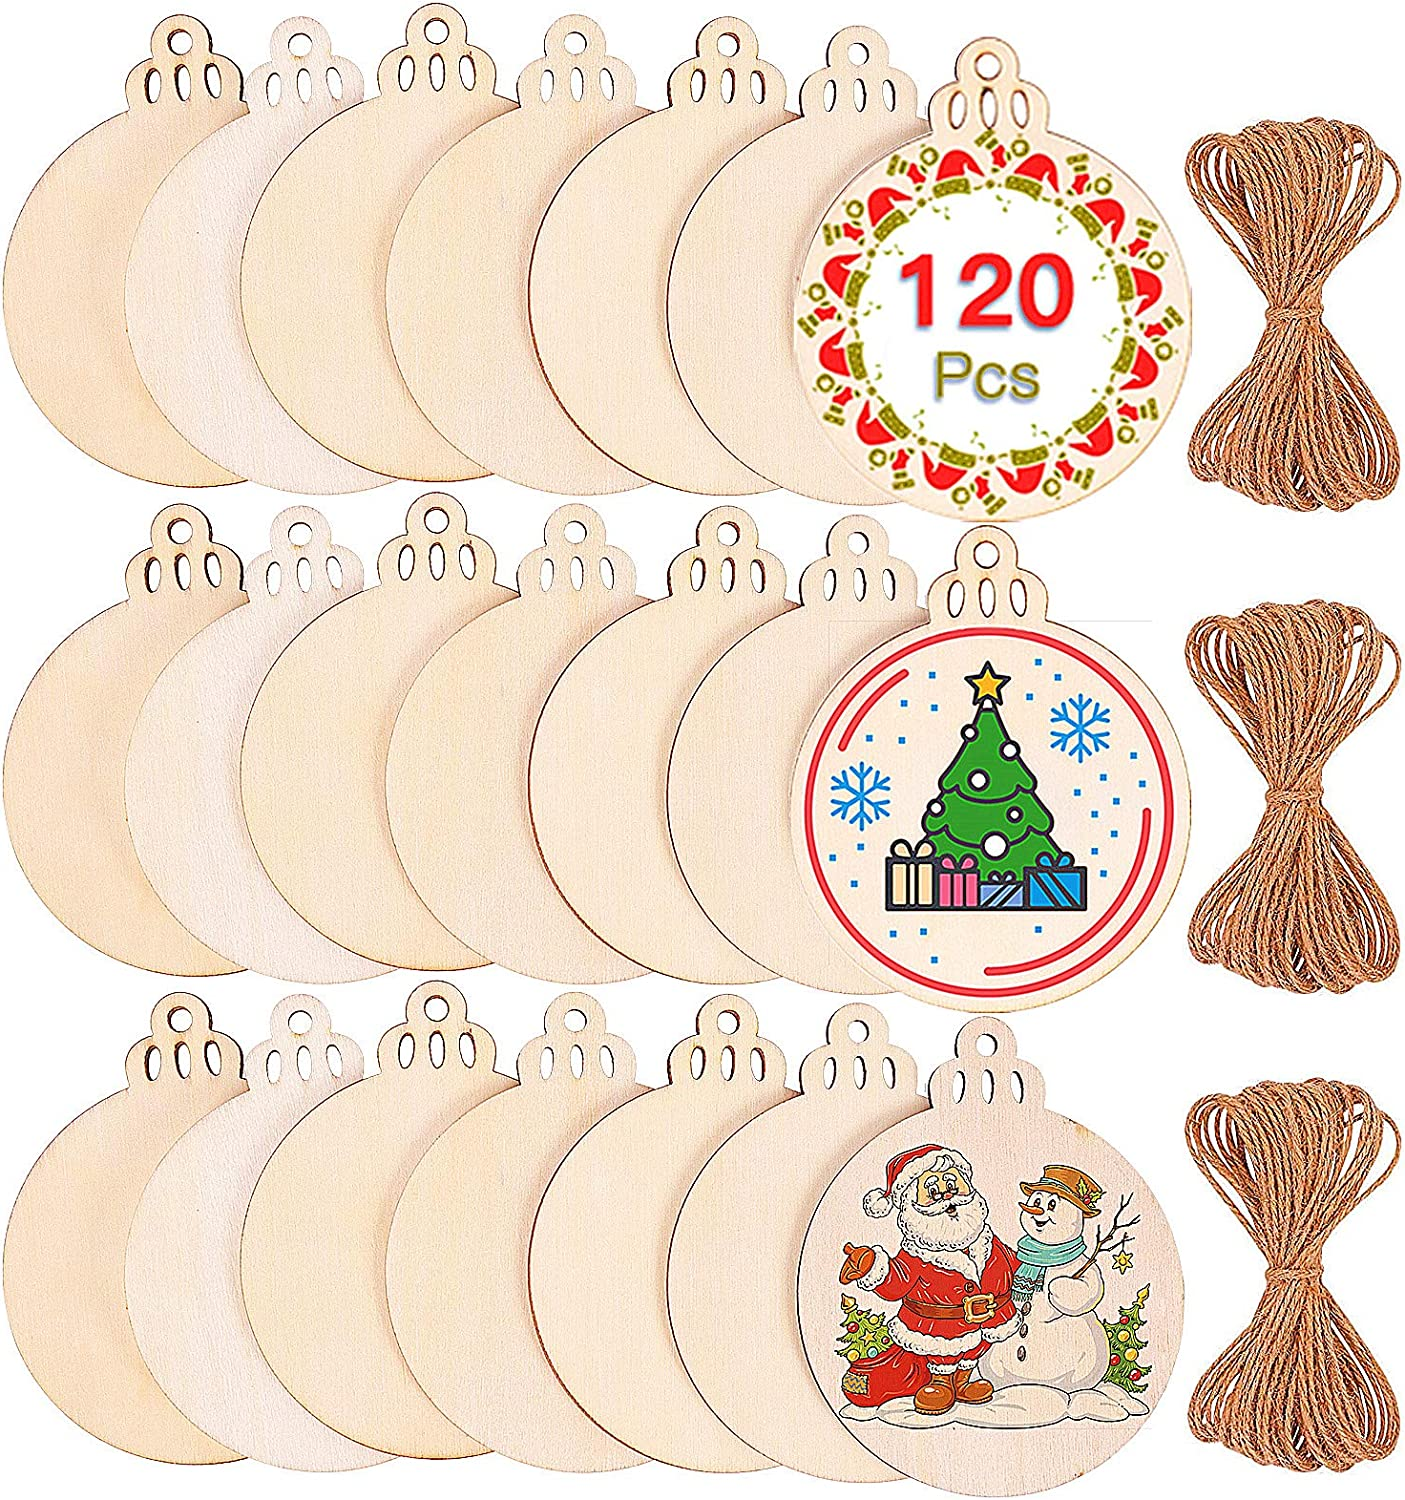 "Max Fun 120Pcs Wood Slices 3.5"" Wooden Diy Christmas Ornaments Unfinished Predrilled Wood Circles for Crafts Centerpieces Round Wooden Discs Hanging Decorations"